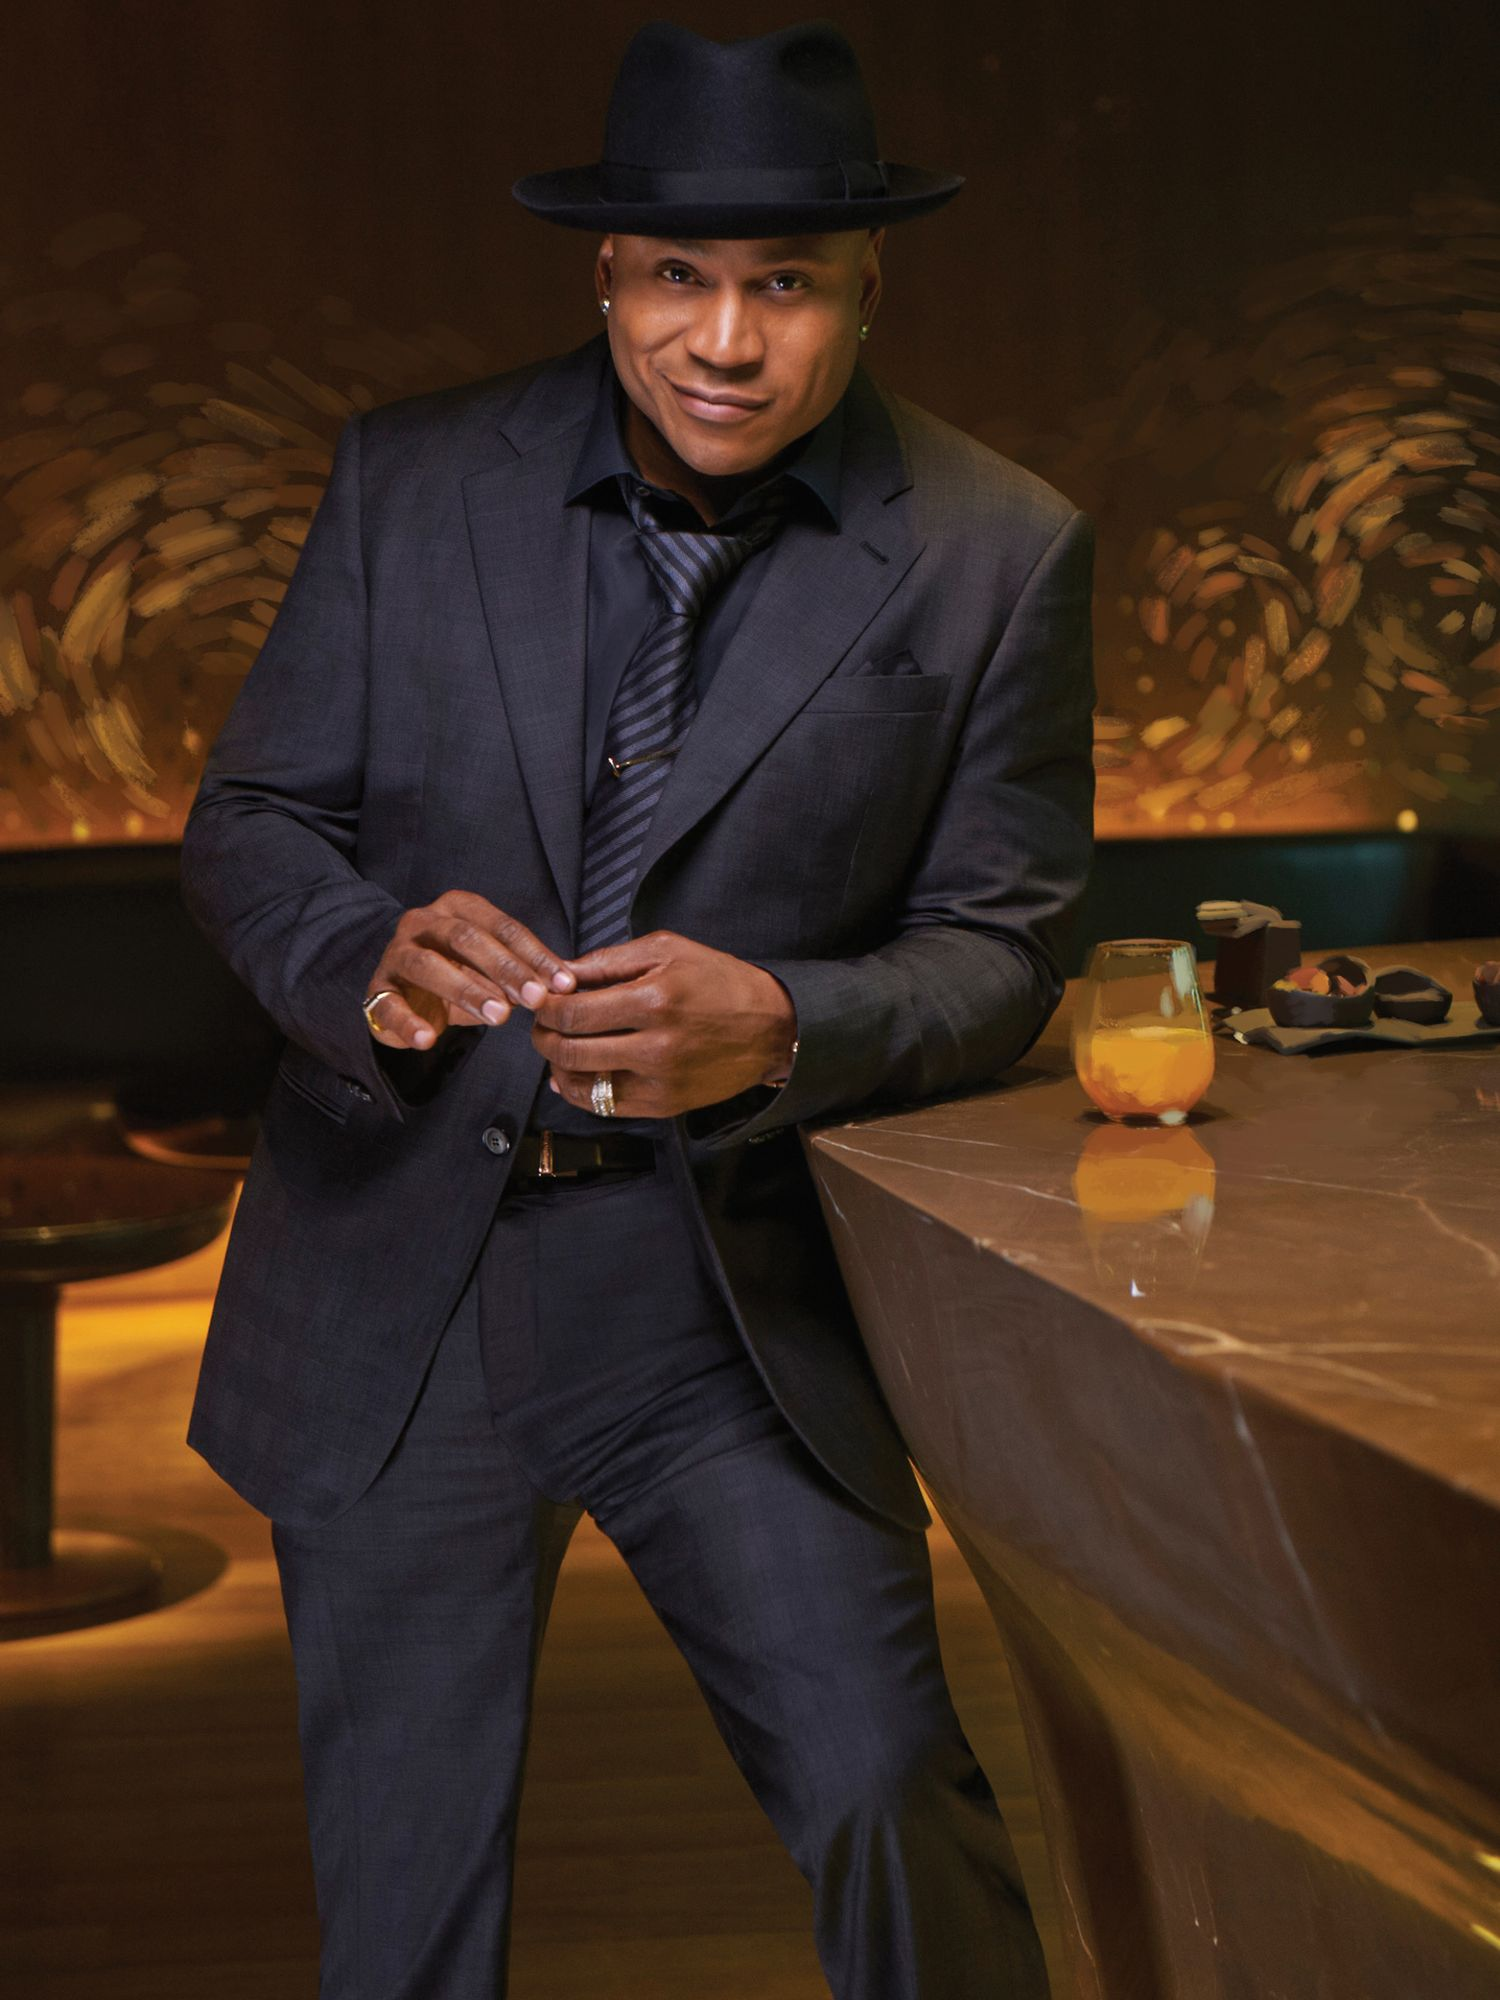 LL COOL J of NCIS Los Angeles smiling in black on black tuxedo with hat